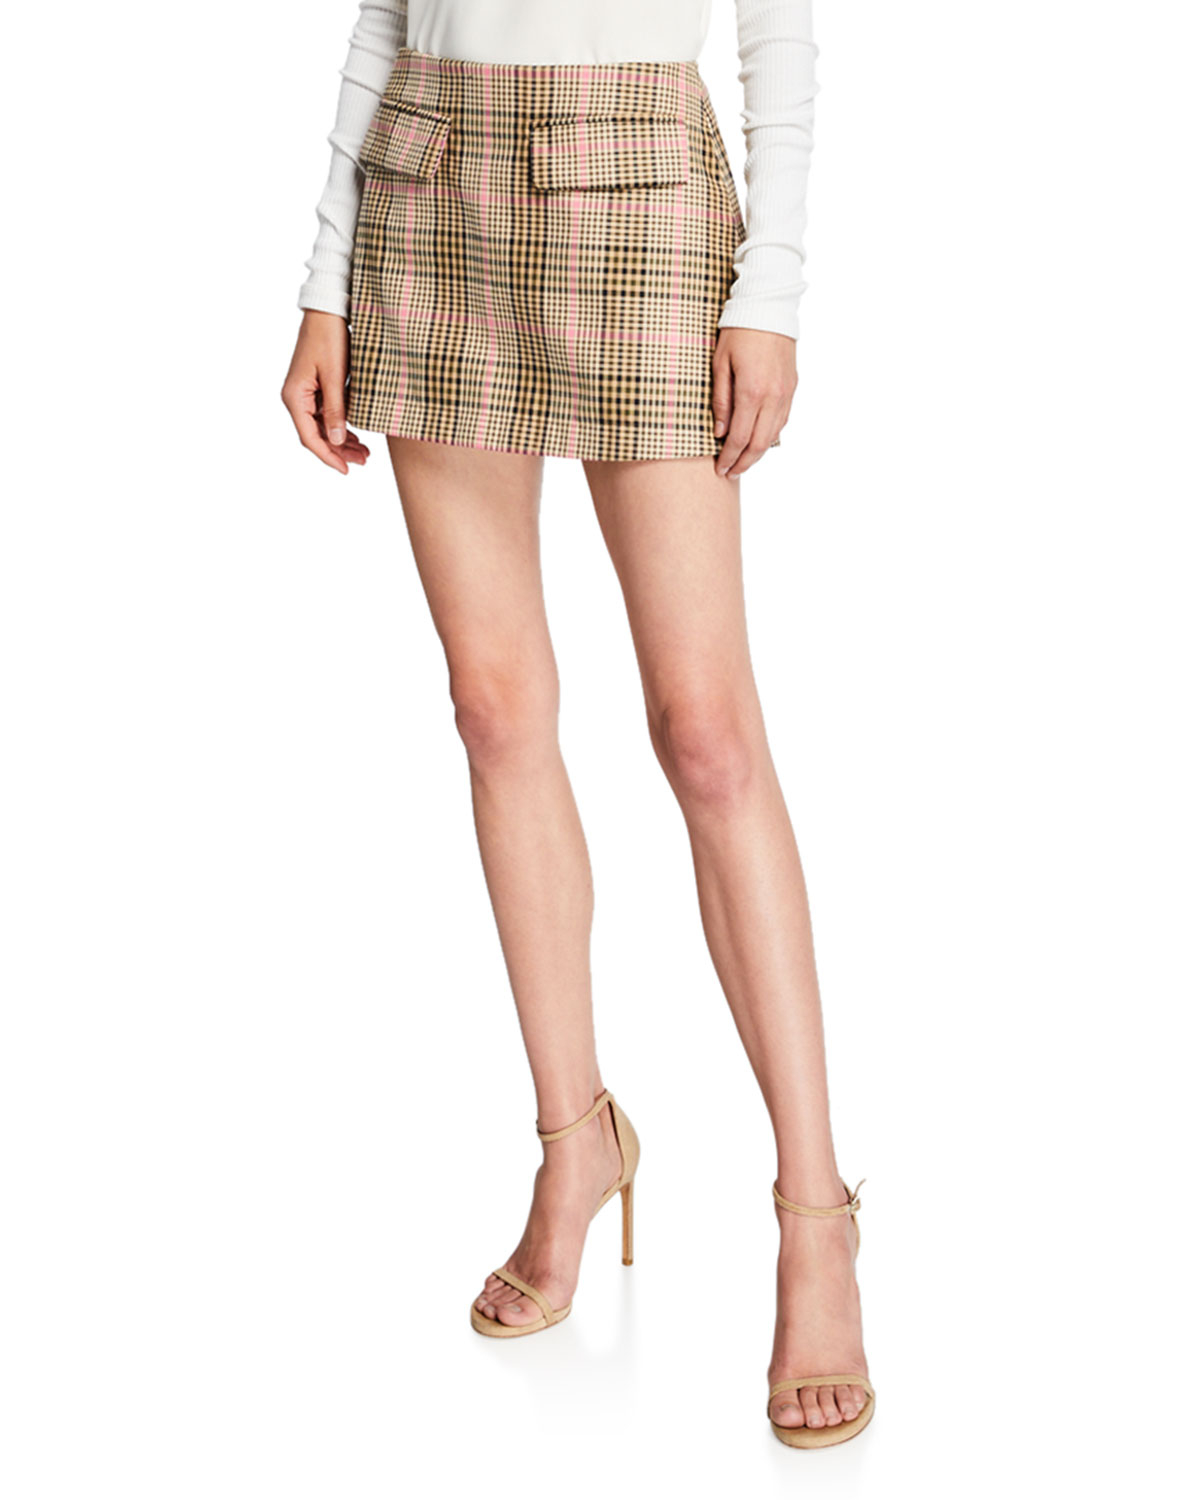 Maggie Marilyn Shorts SHORT AND SWEET CHECK SKIRT